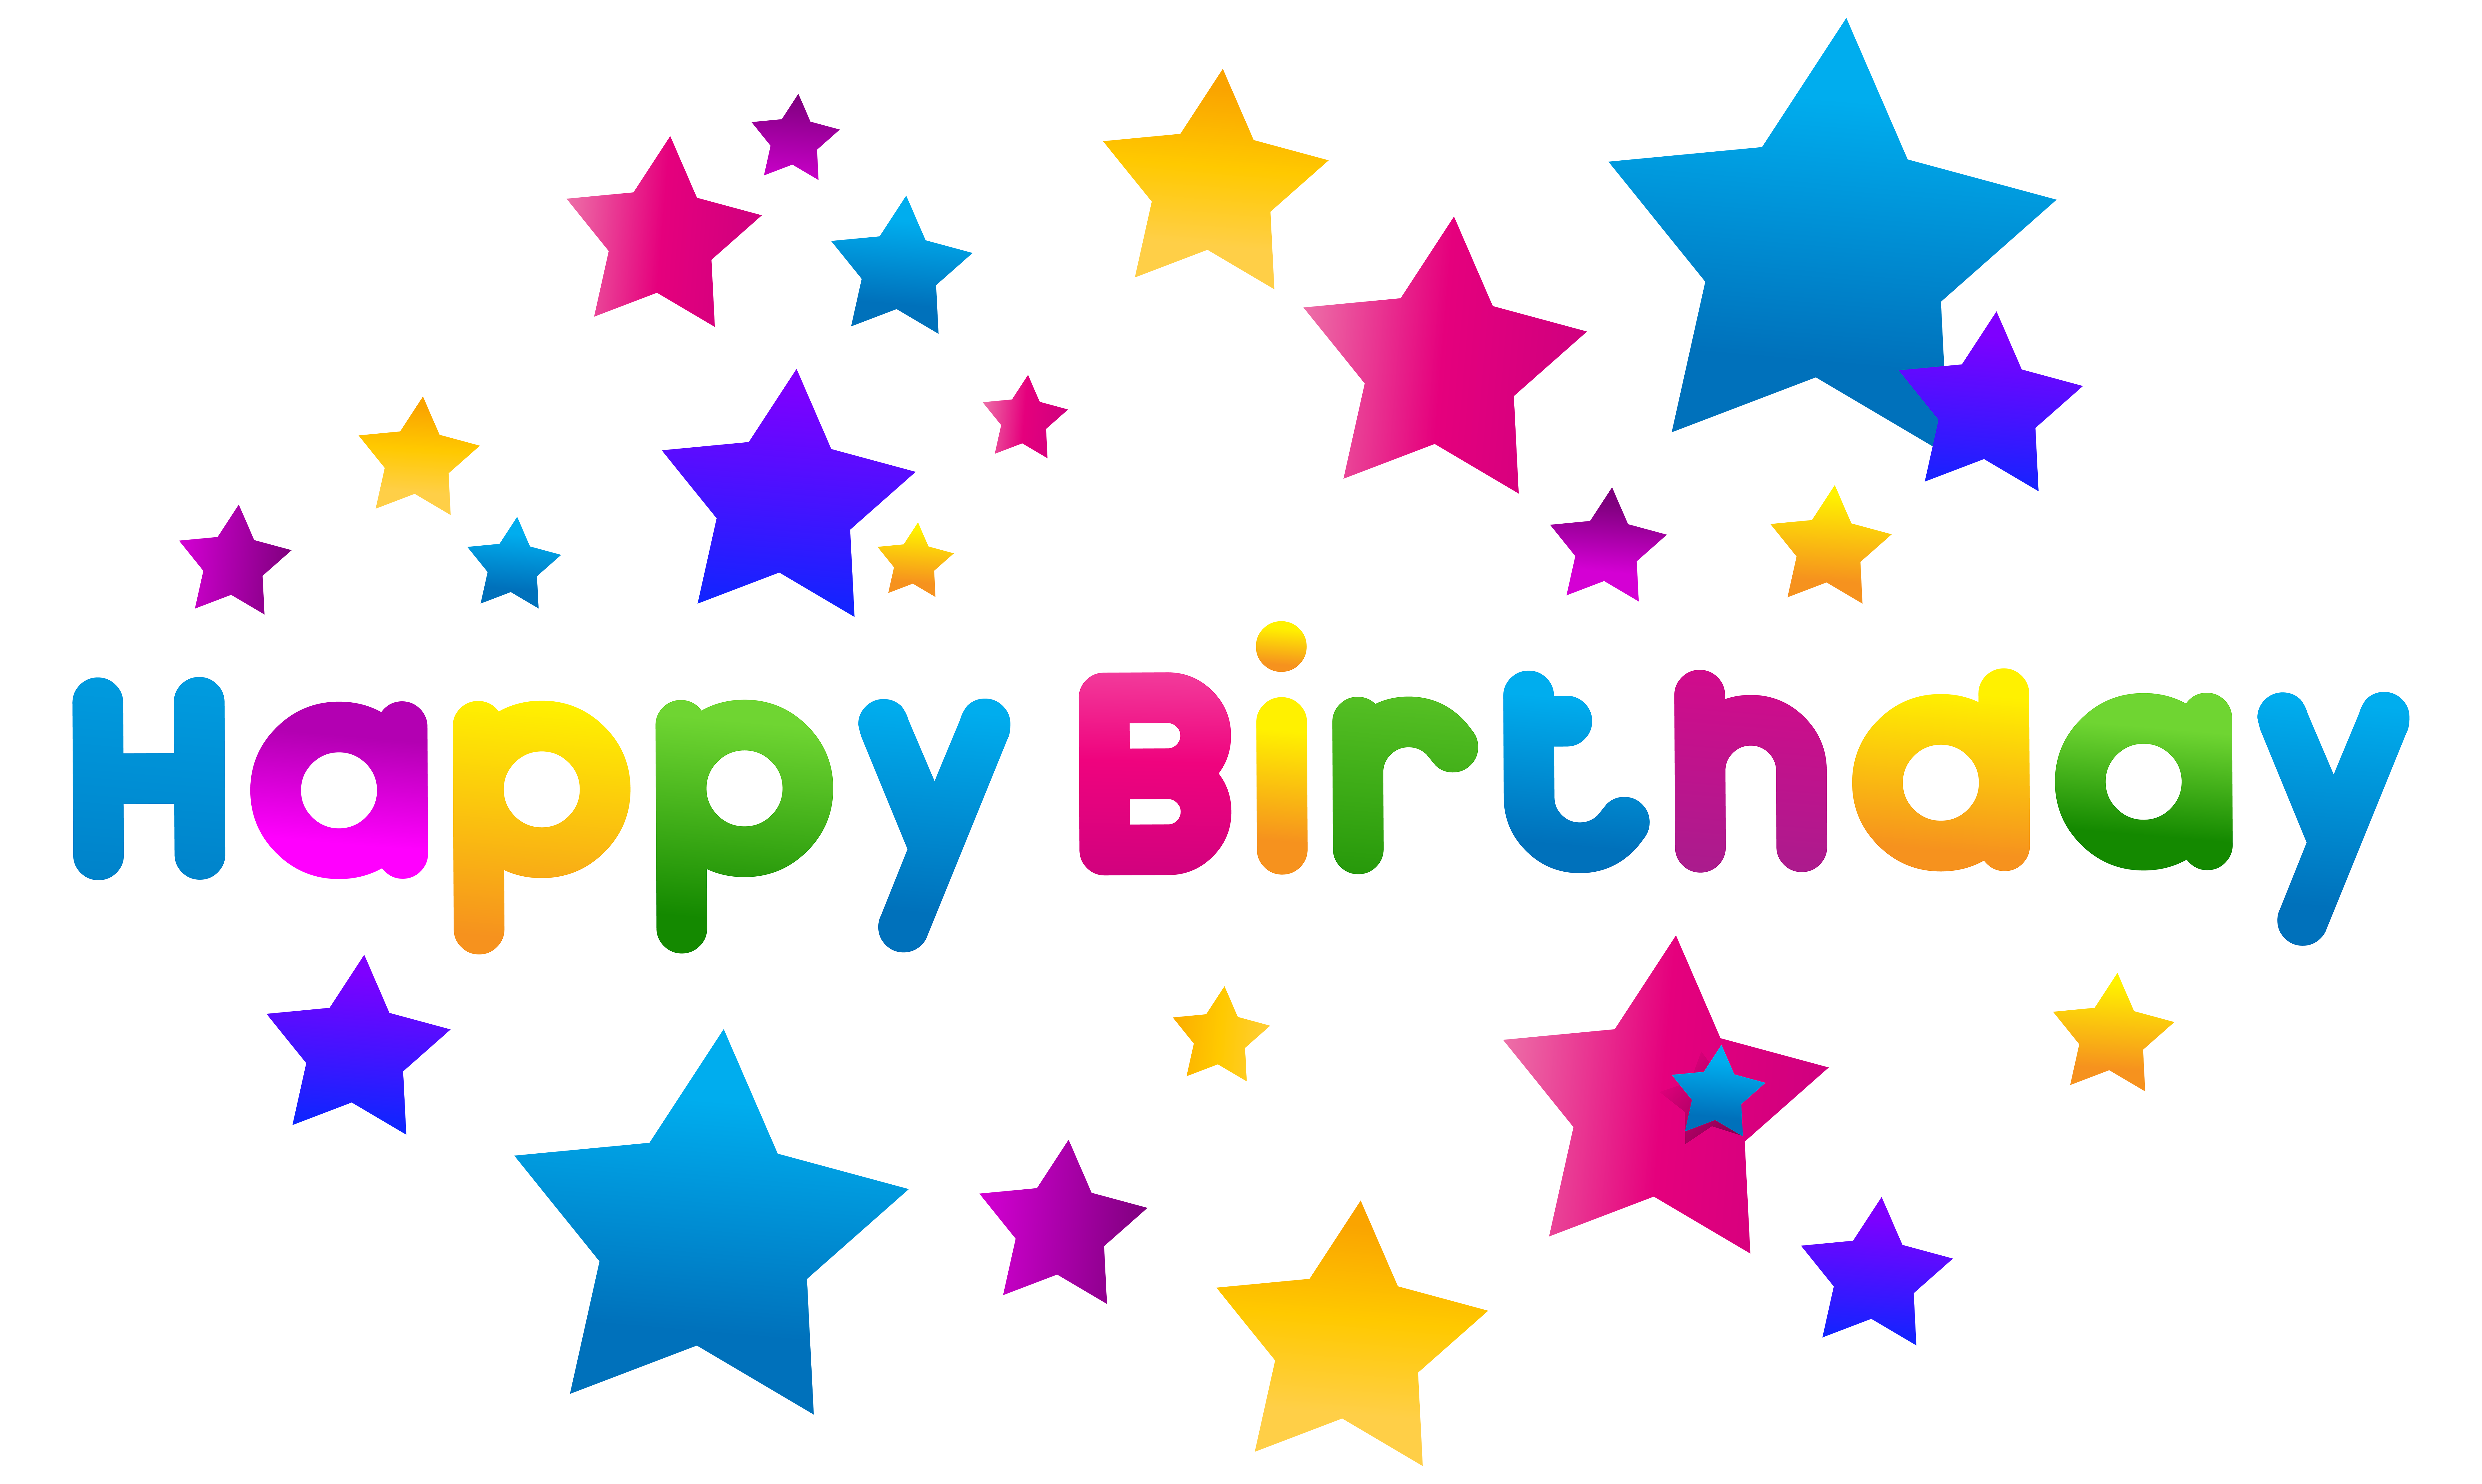 All star birthday clipart vector transparent download Happy Birthday Text Decor PNG Clipart Image | Gallery Yopriceville ... vector transparent download